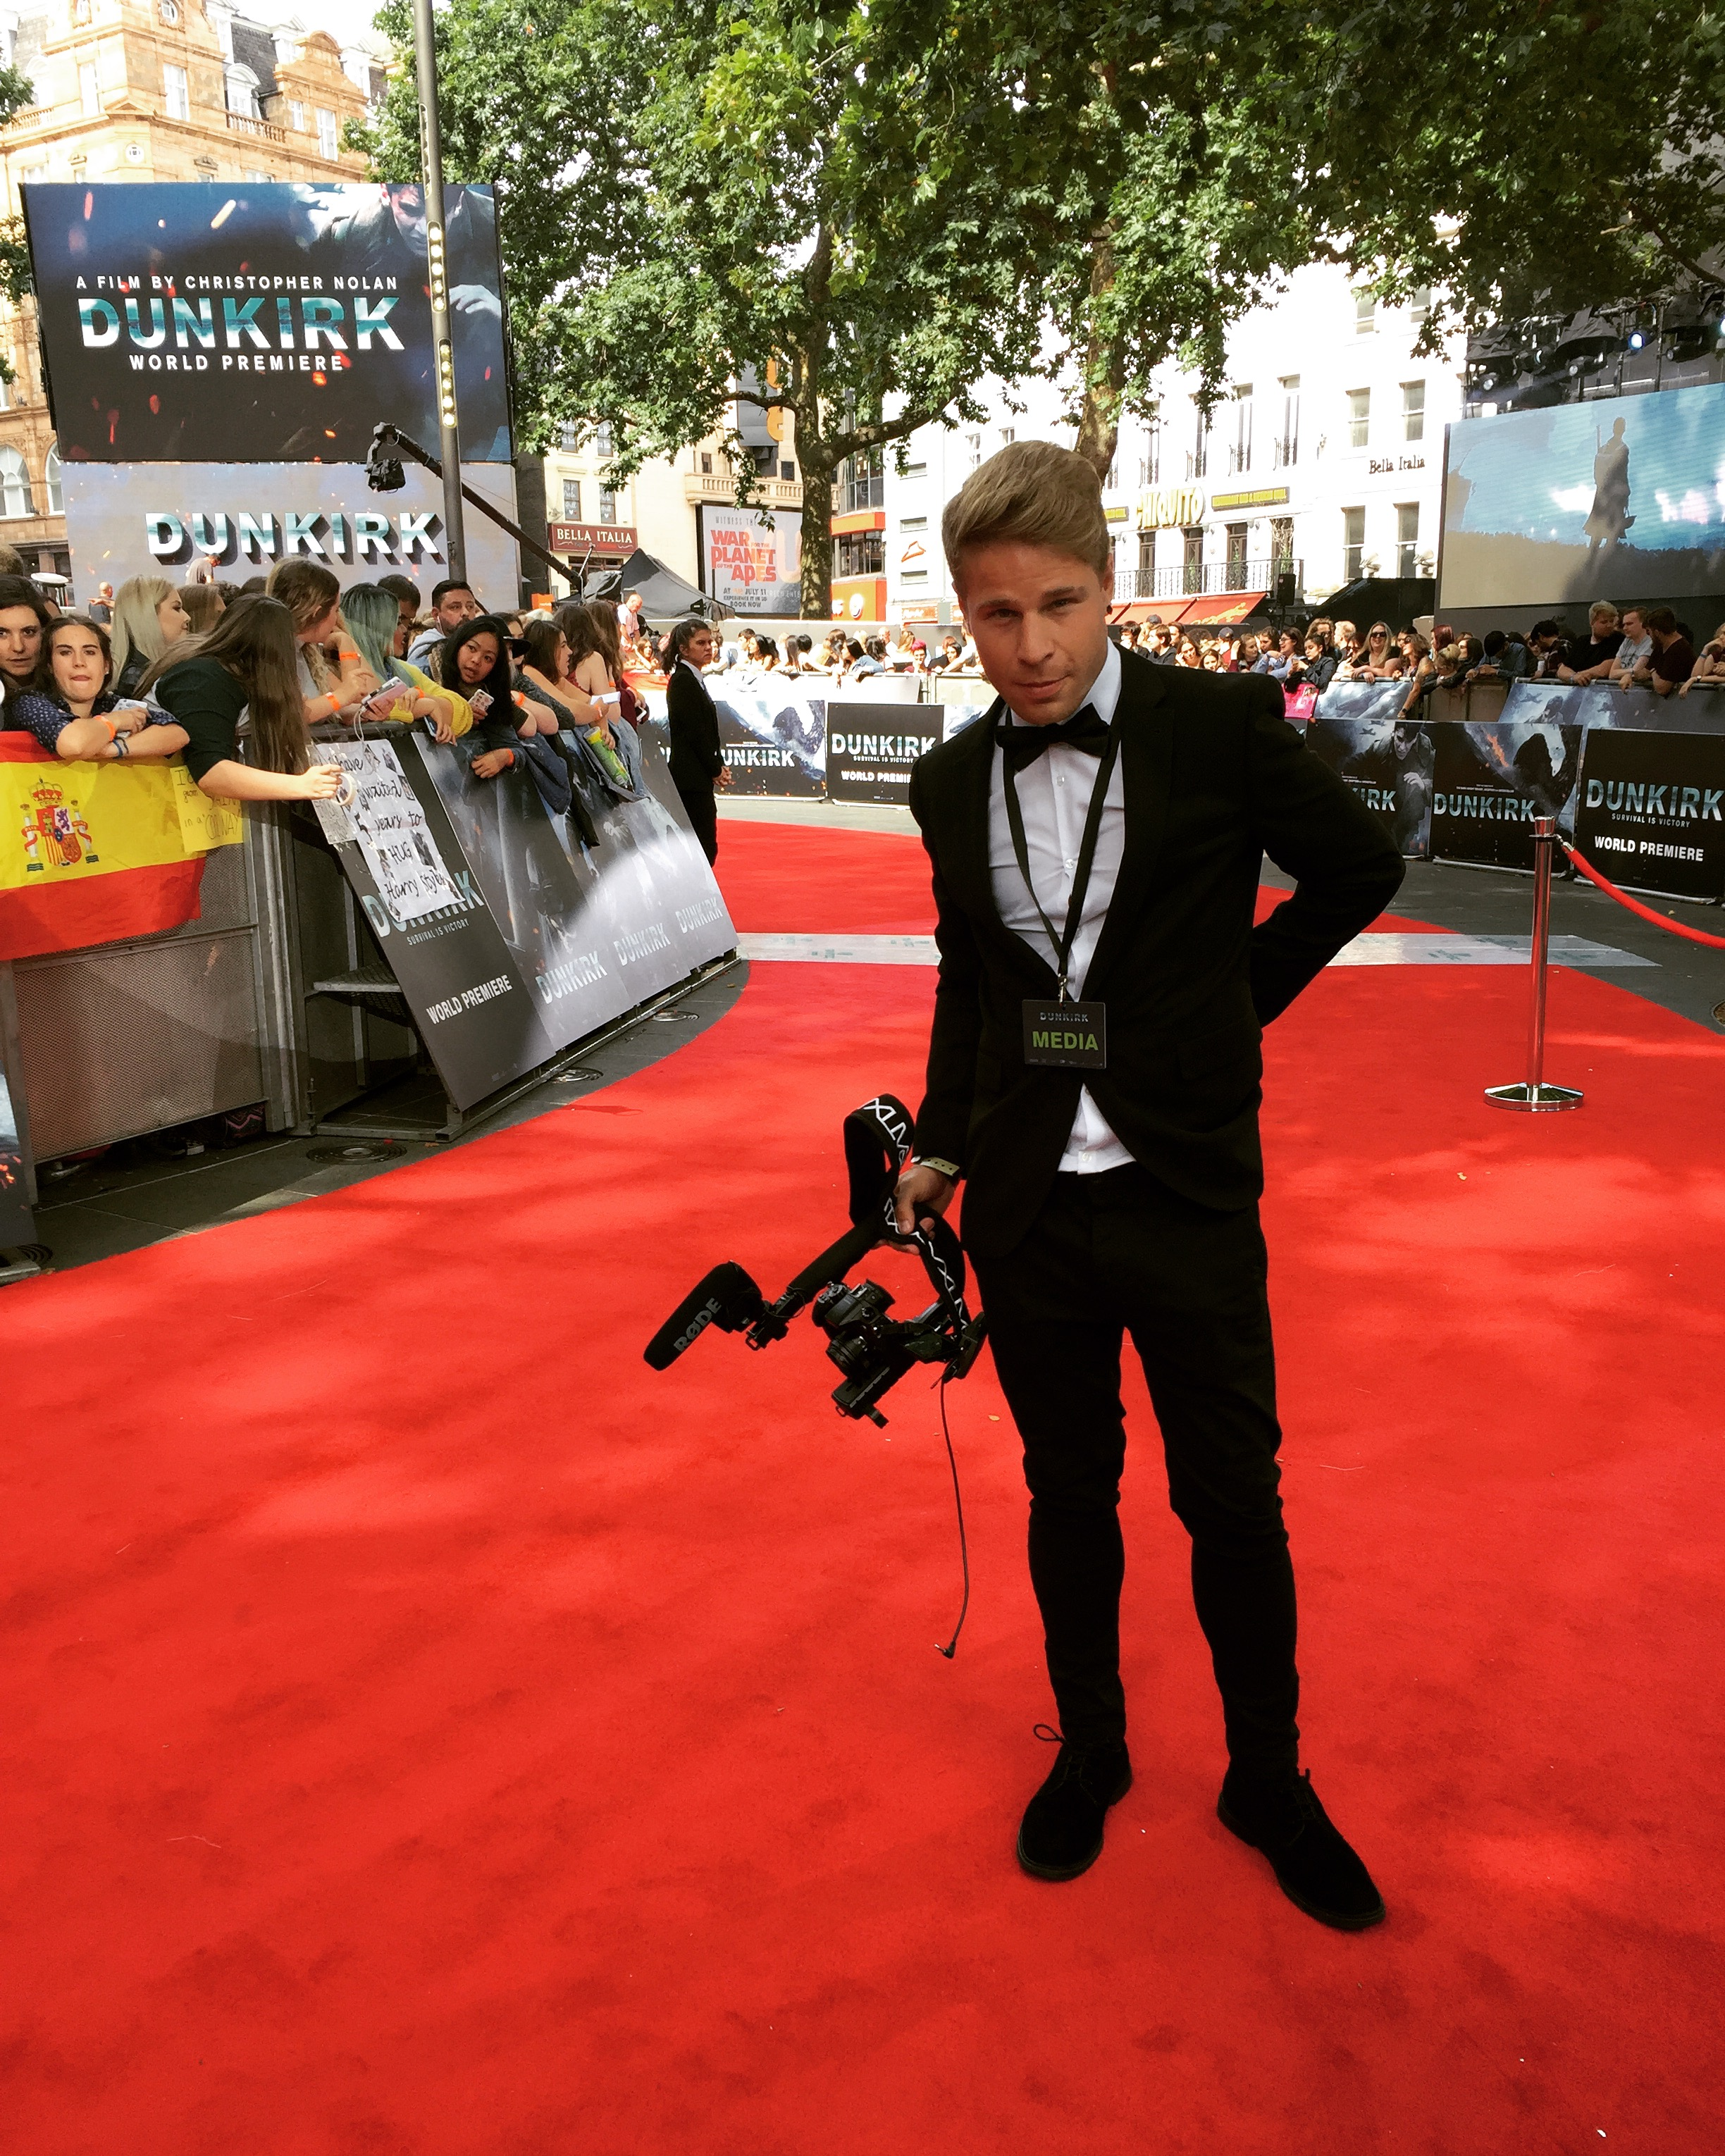 DUNKIRK - World Premiere - London